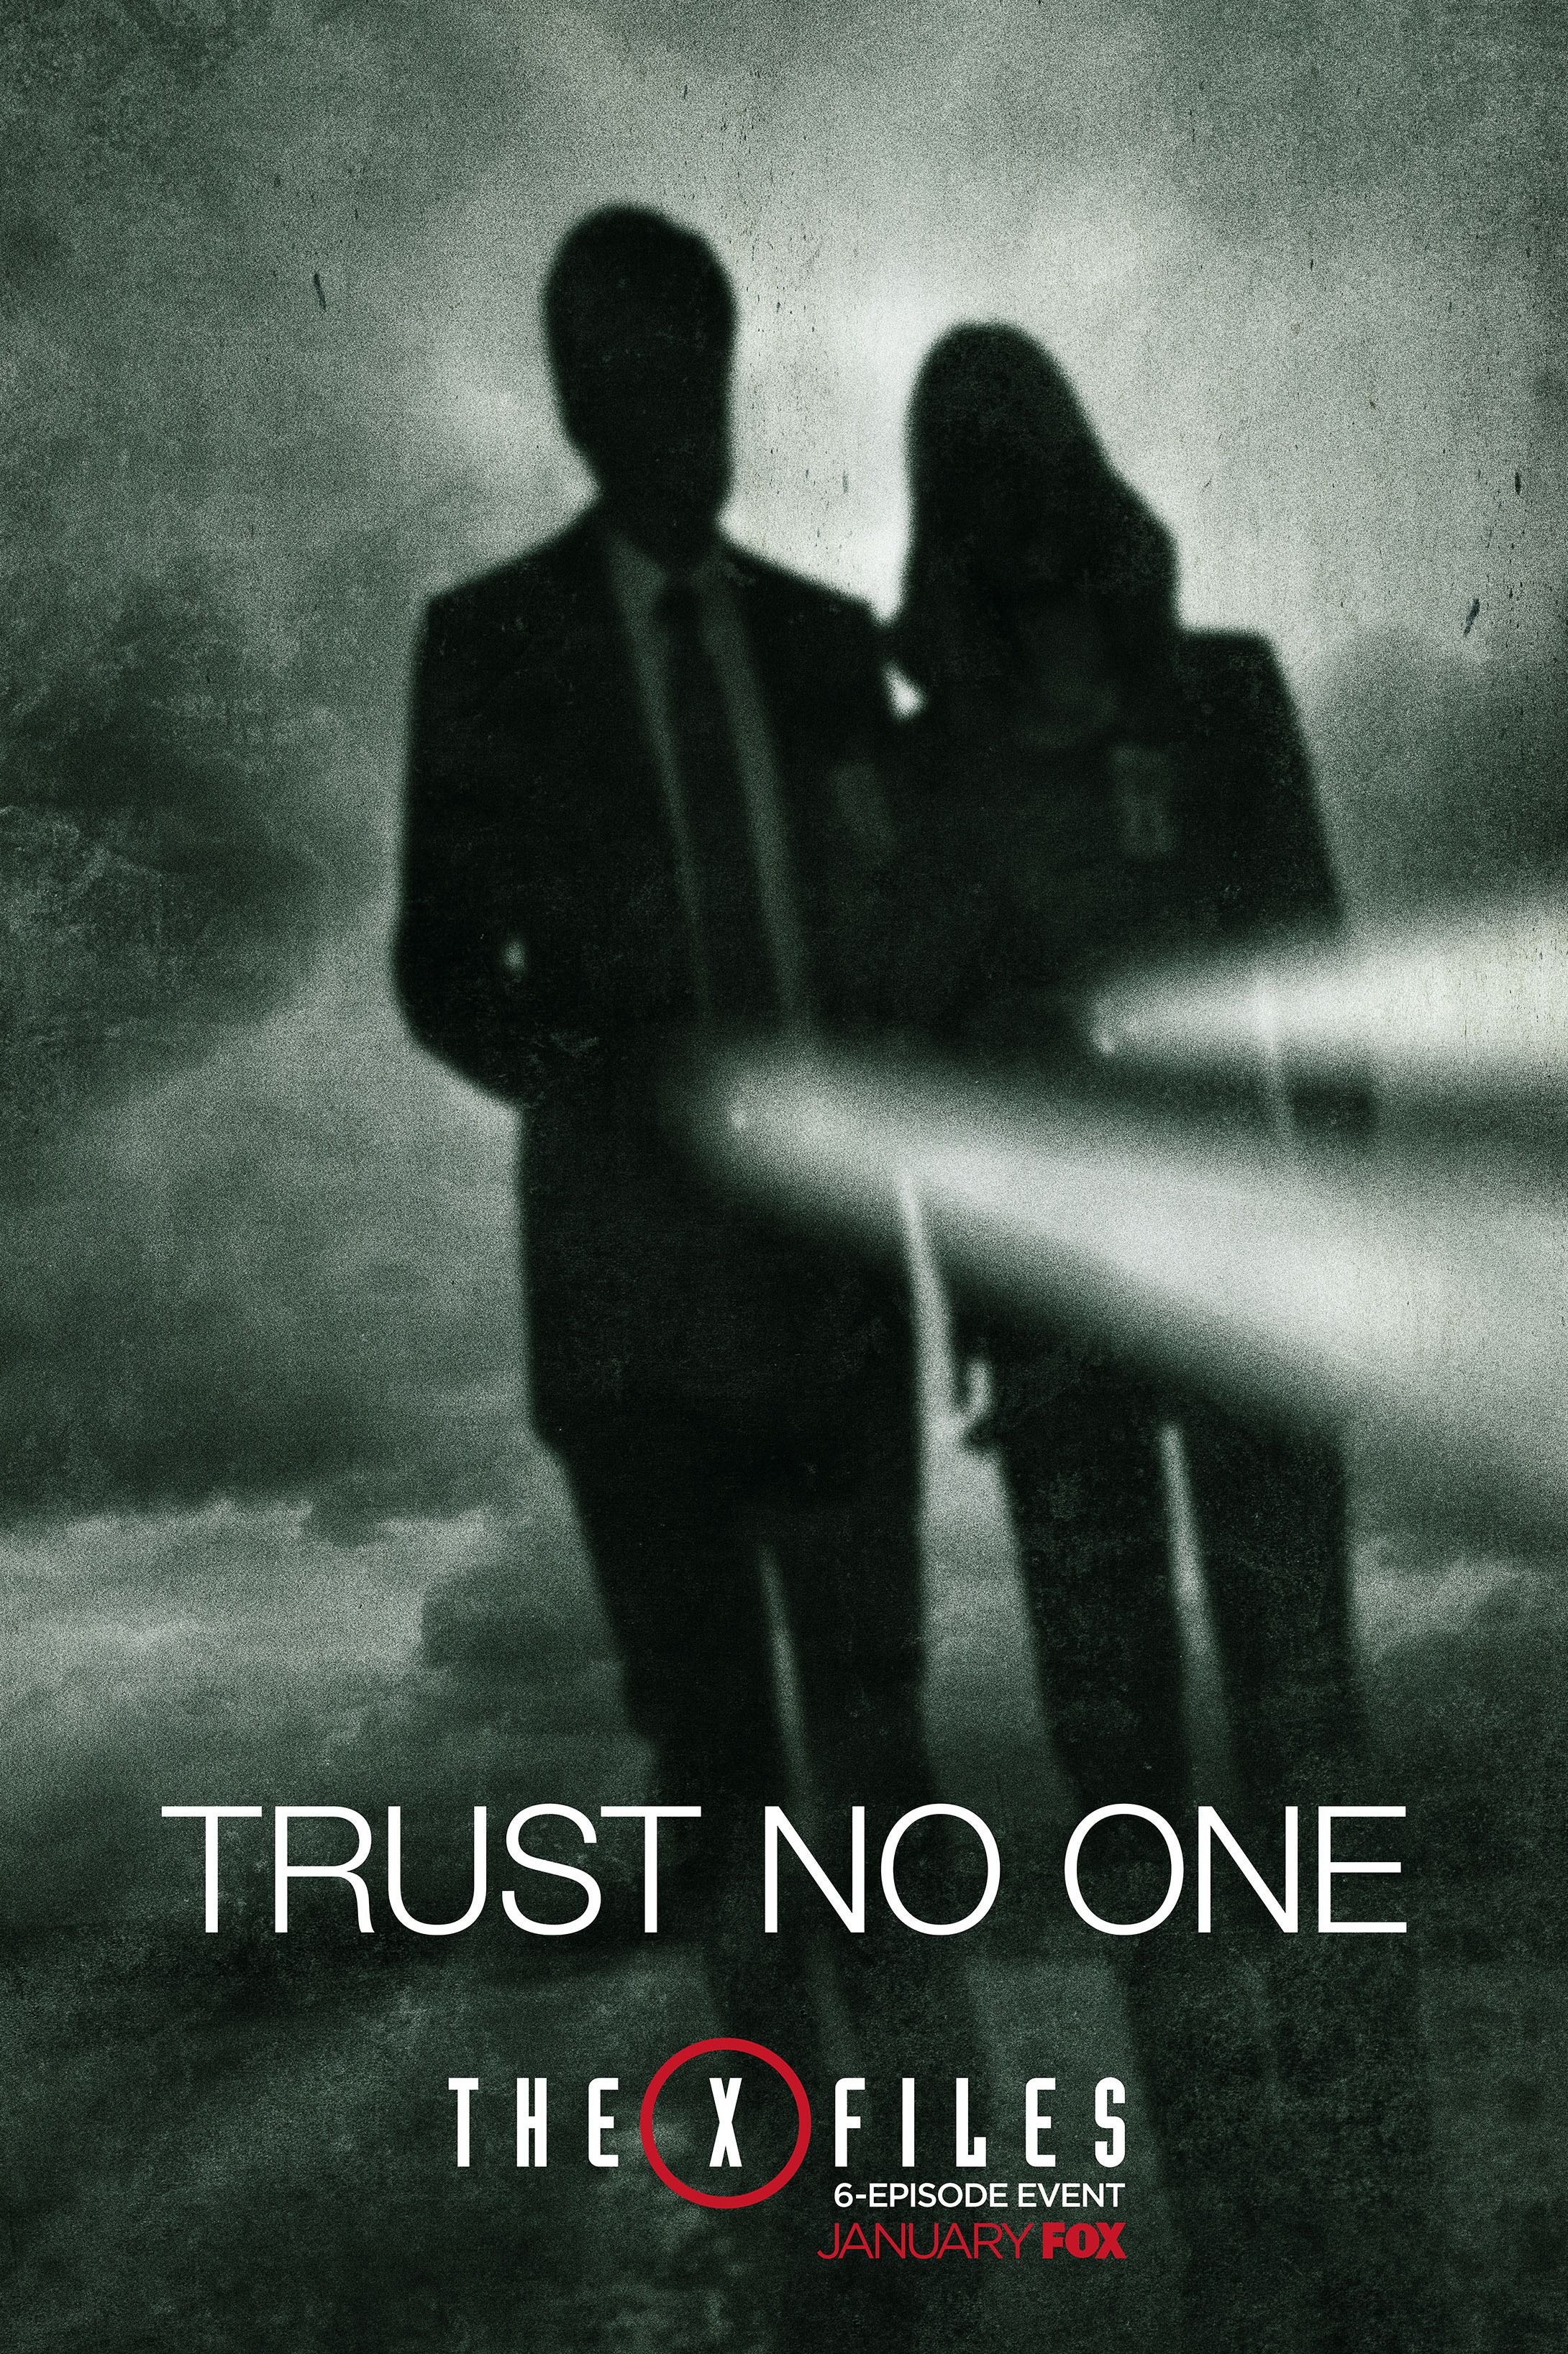 Key art for The X-Files